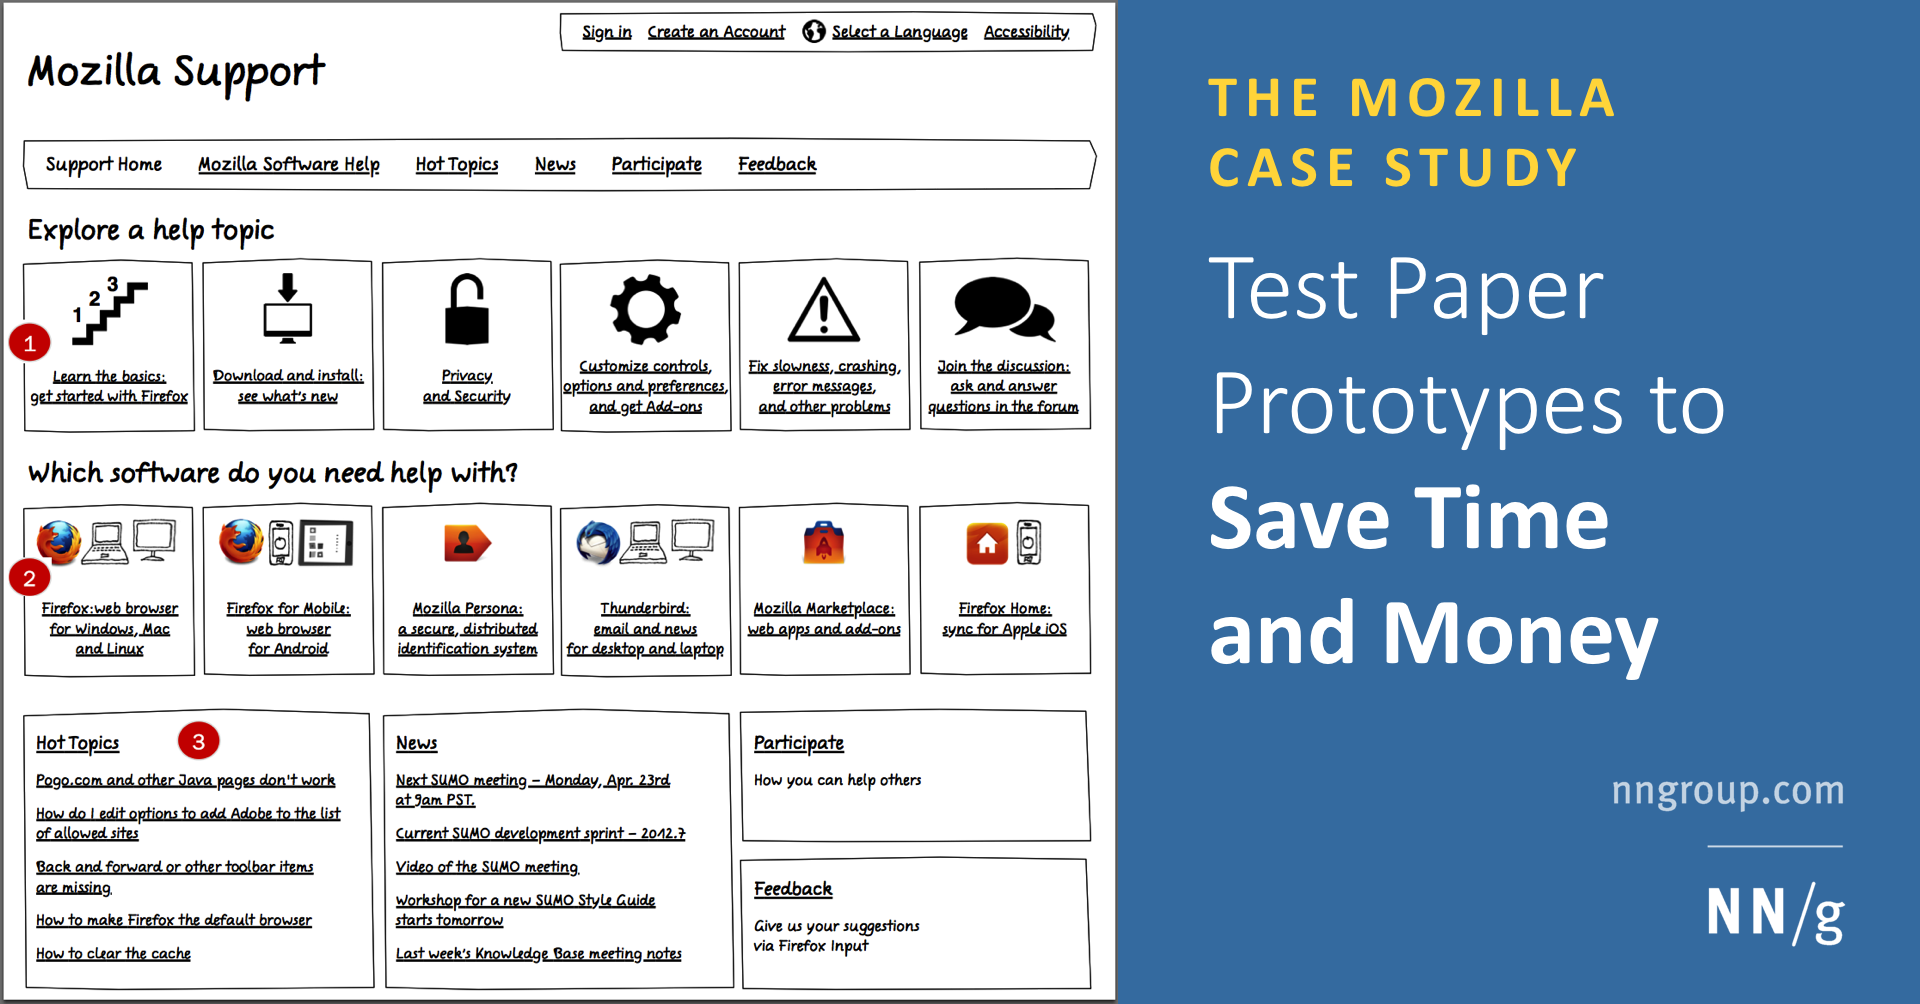 Test Paper Prototypes to Save Time and Money: The Mozilla